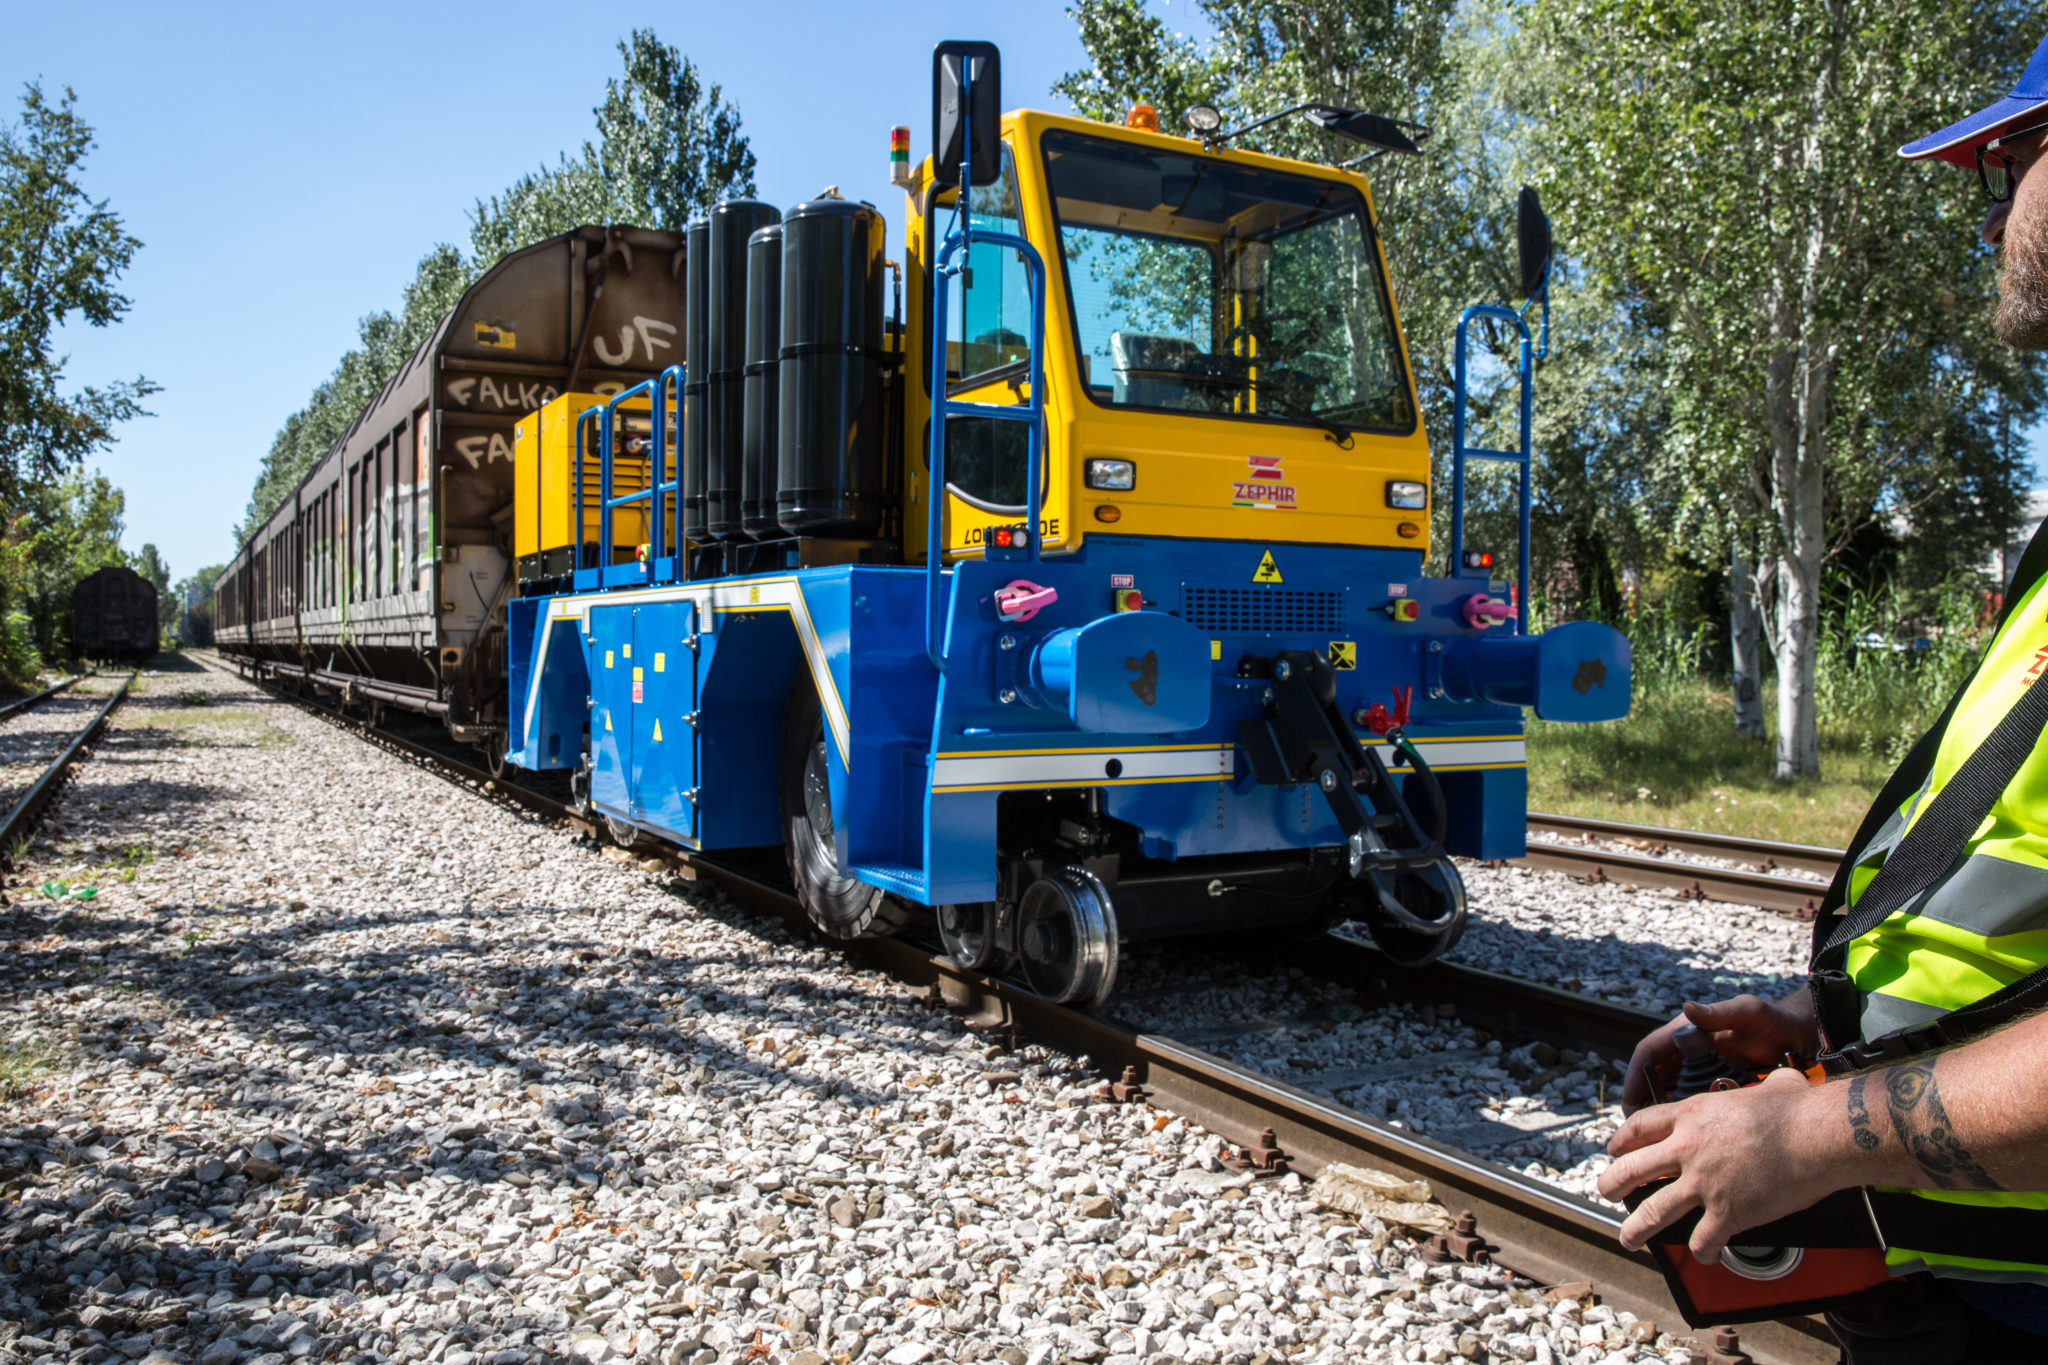 LINE LOK Electric Railcar Mover